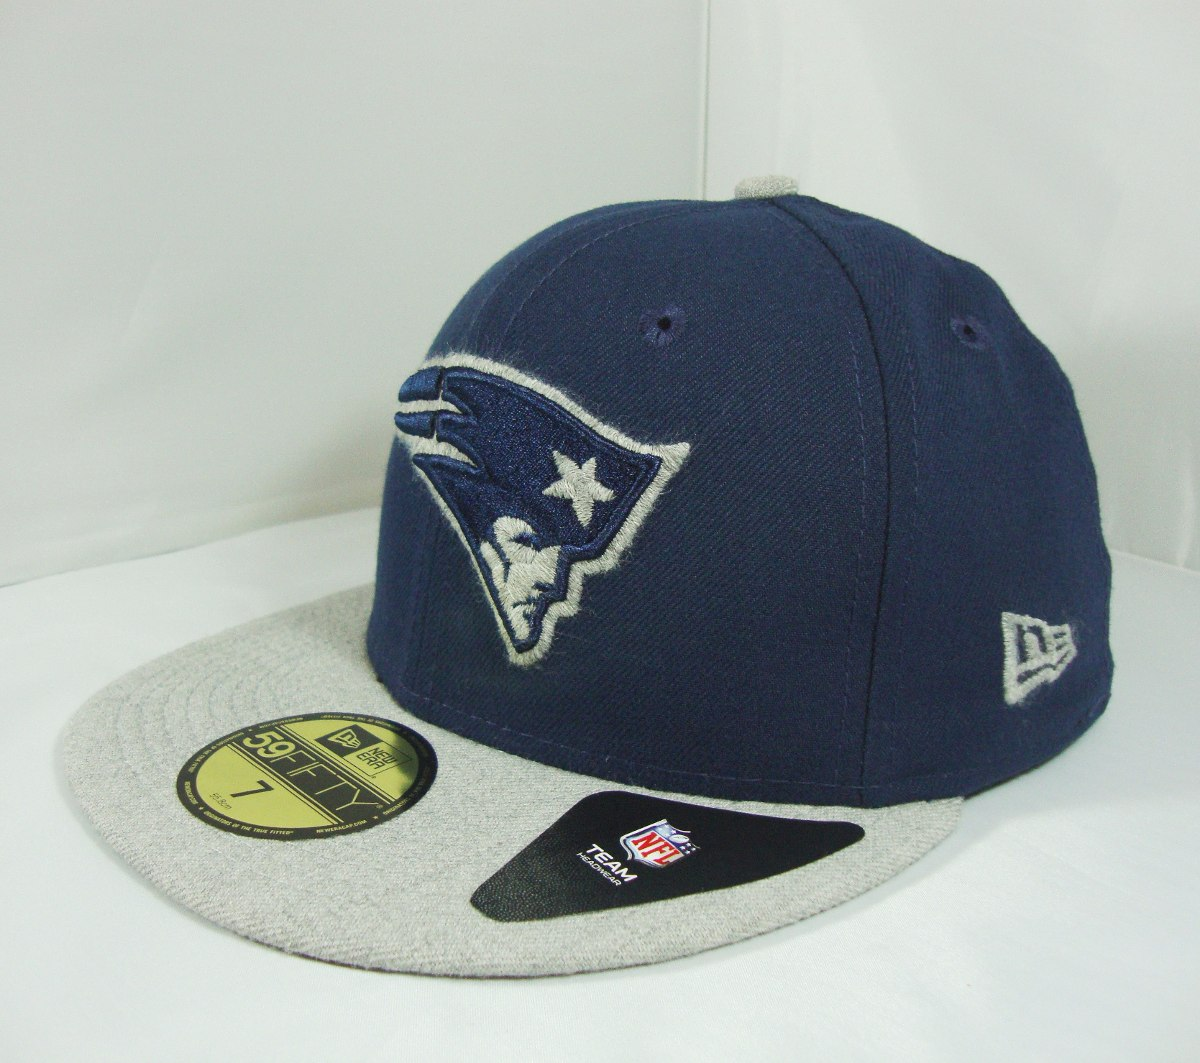 fe49e6690cf08 Gorra New Era 59fifty New England Patriots -   550.00 en Mercado Libre